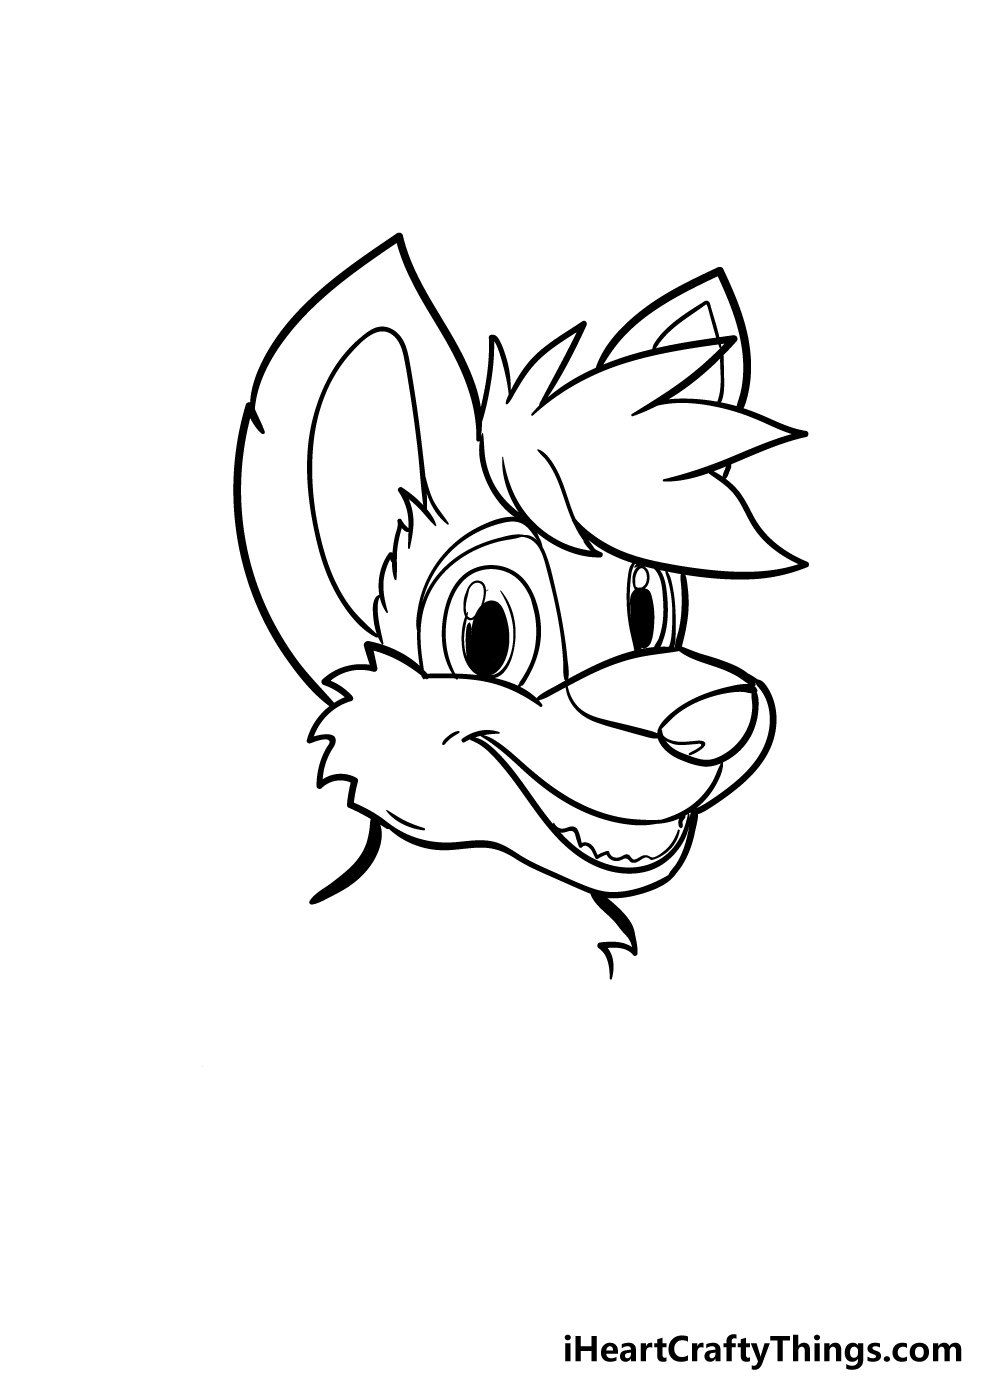 furry drawing step 5